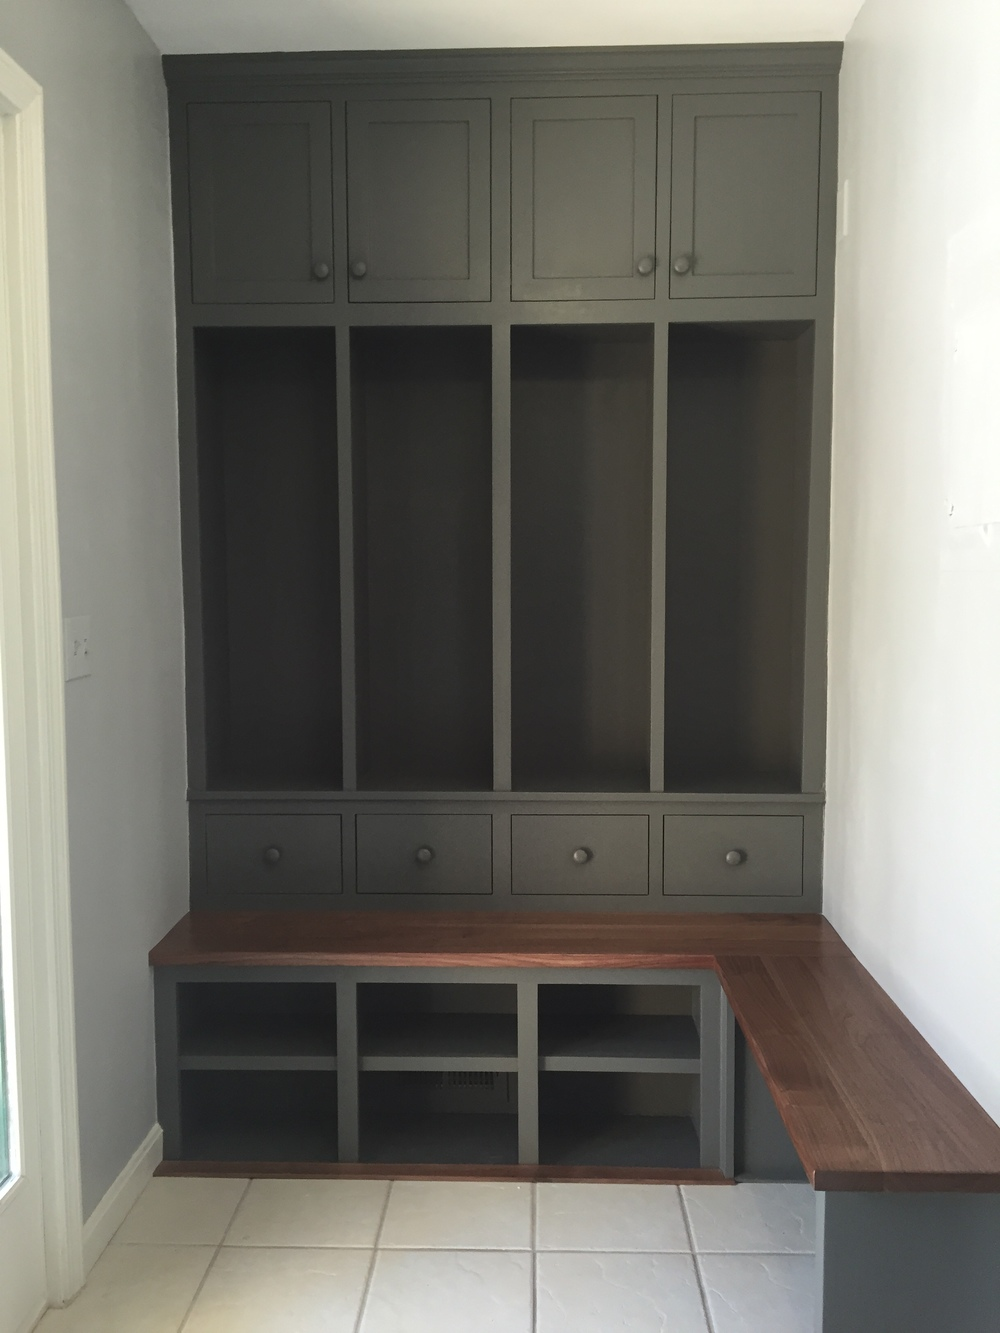 Walnut Mudroom Cabinetry